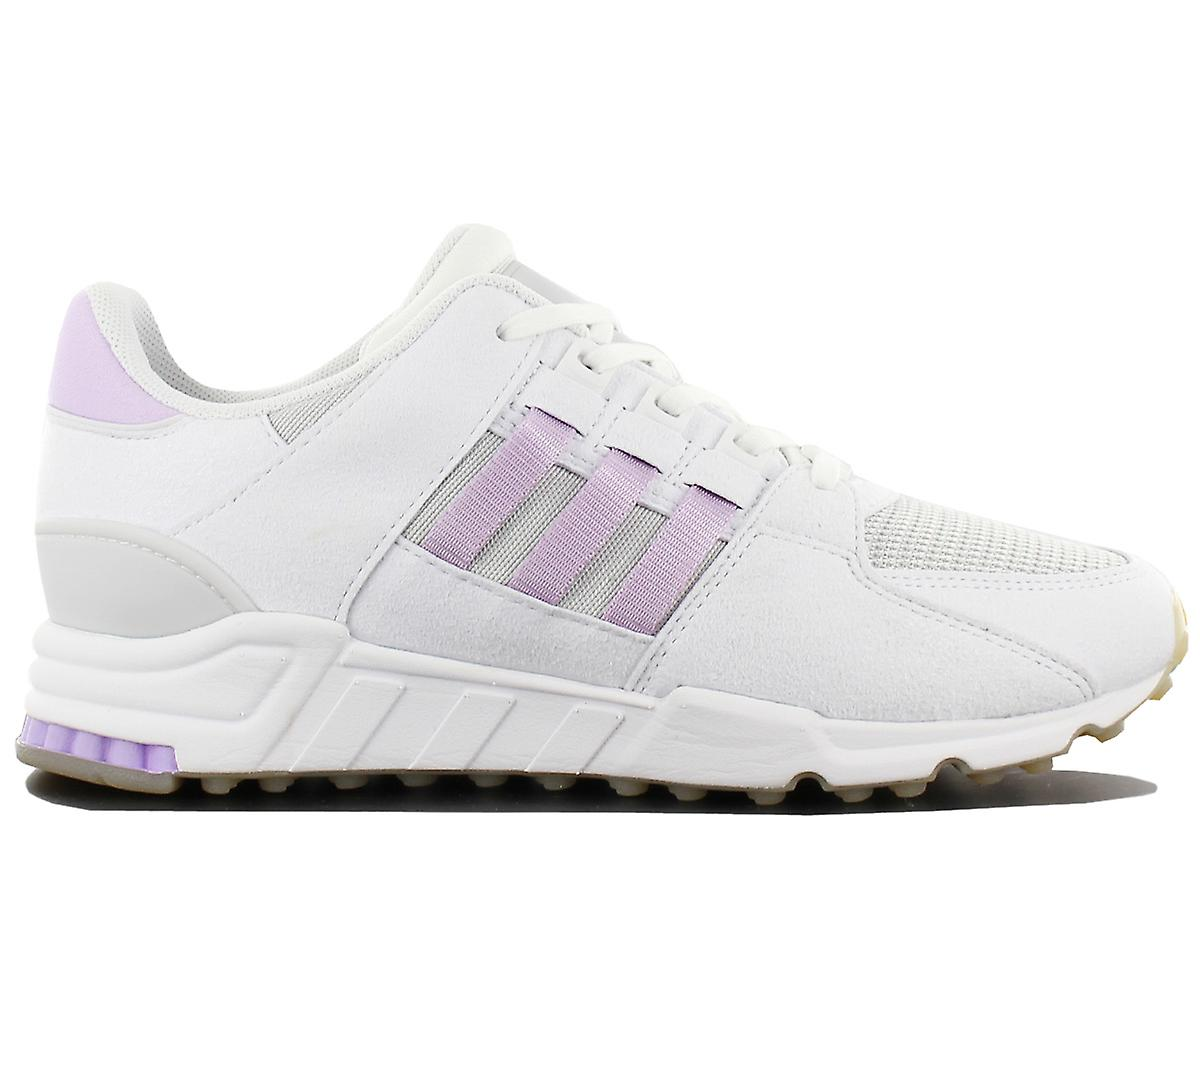 adidas EQT Support RF W BY9105 Women's Shoes White Sneakers Sports Shoes